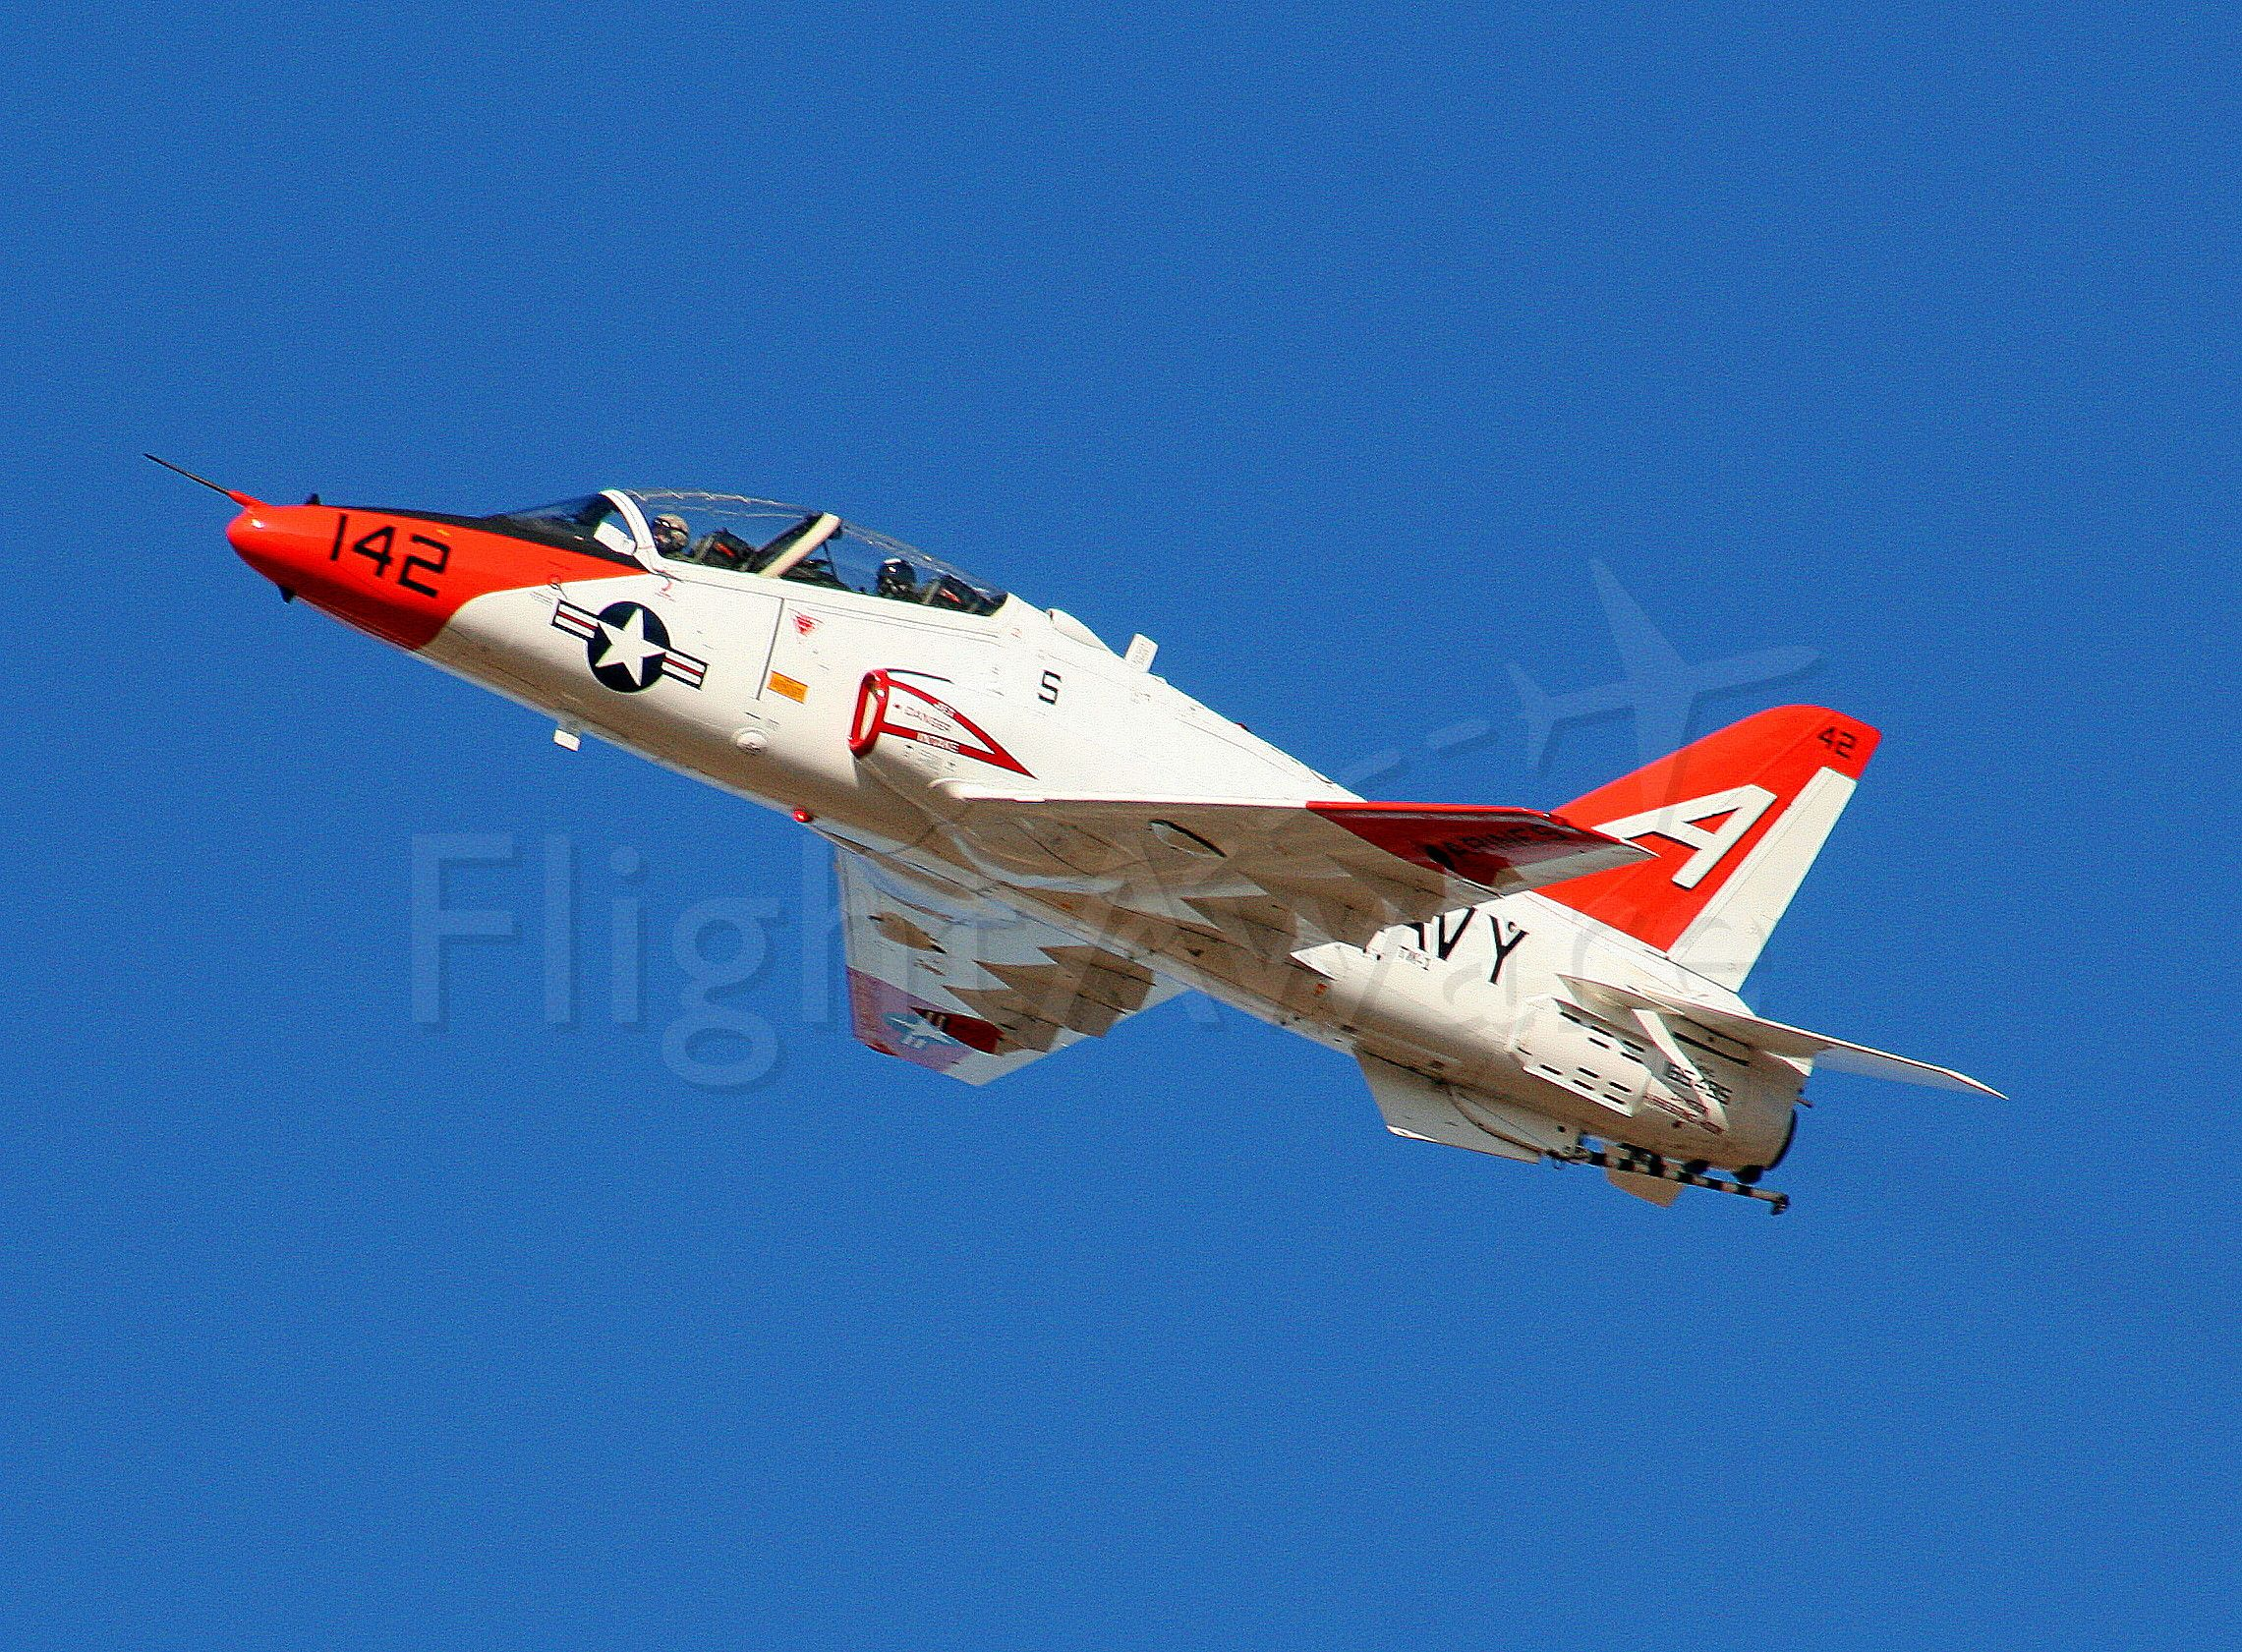 16-5142 — - Bobcat 2-7 from VT-7 Strike Eagles of TW-1 departs runway 25 for NAS Meridian MS.